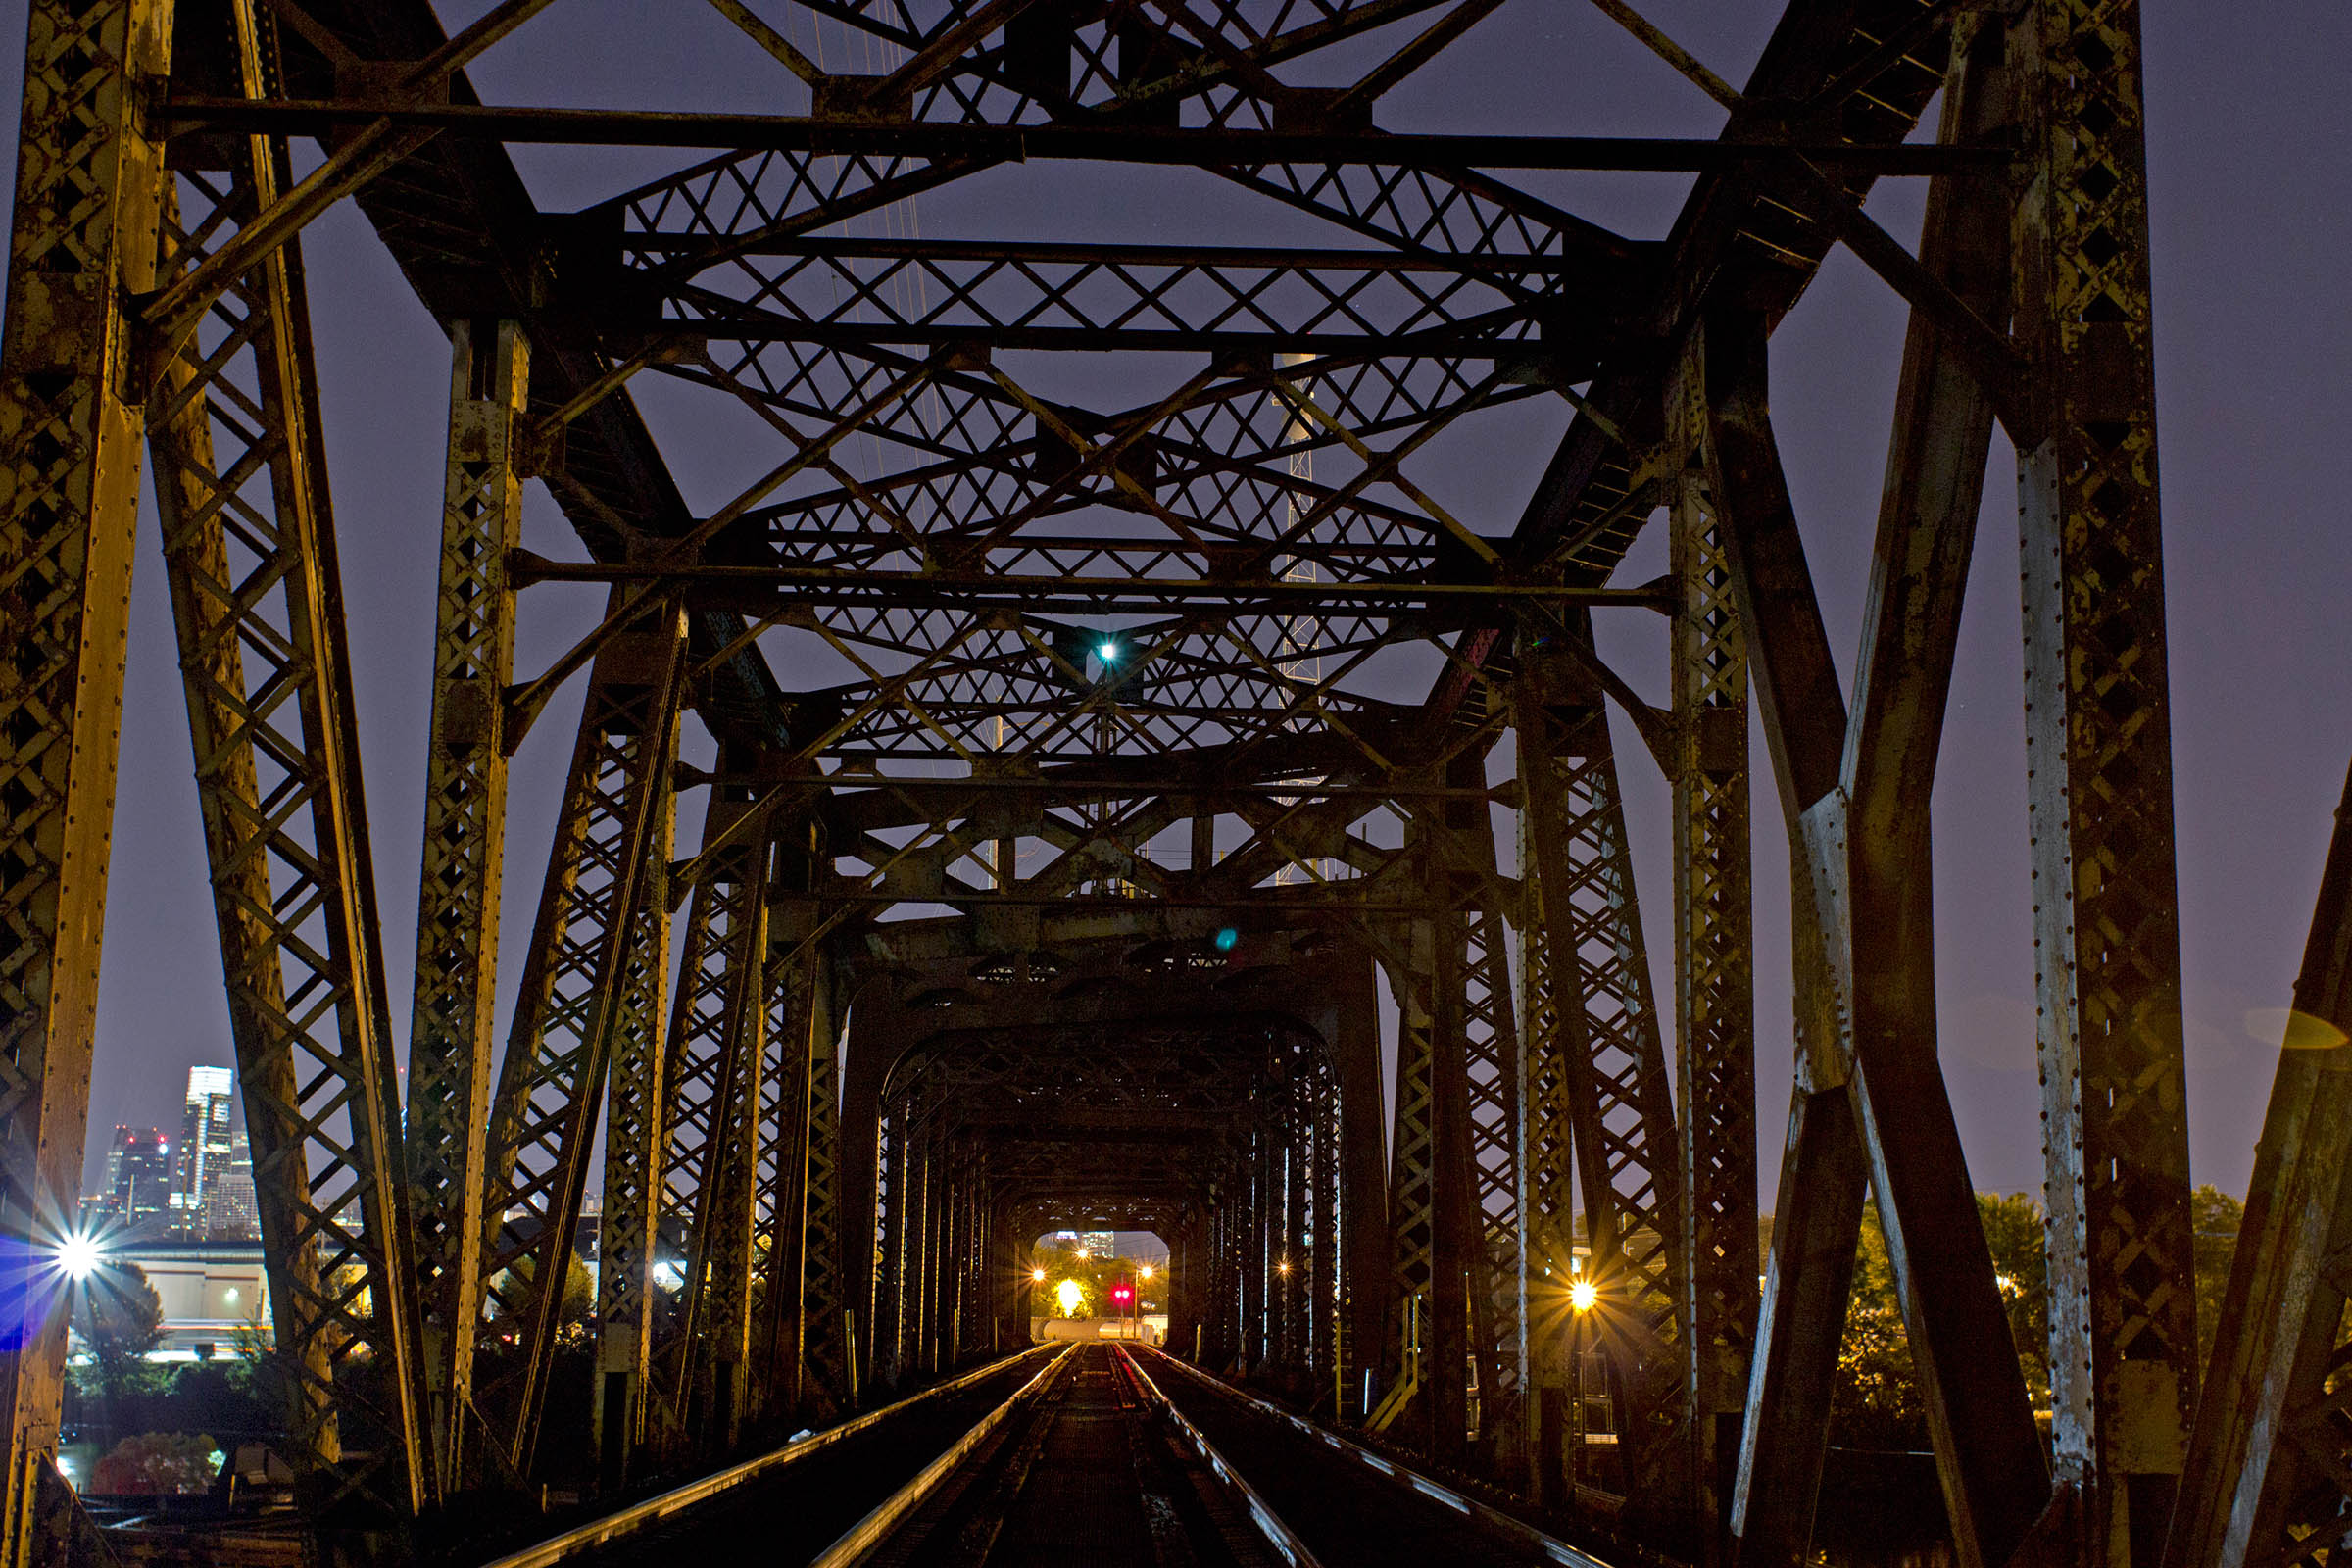 Railroad bridge, Philadelphia, PA, USA, 2013.